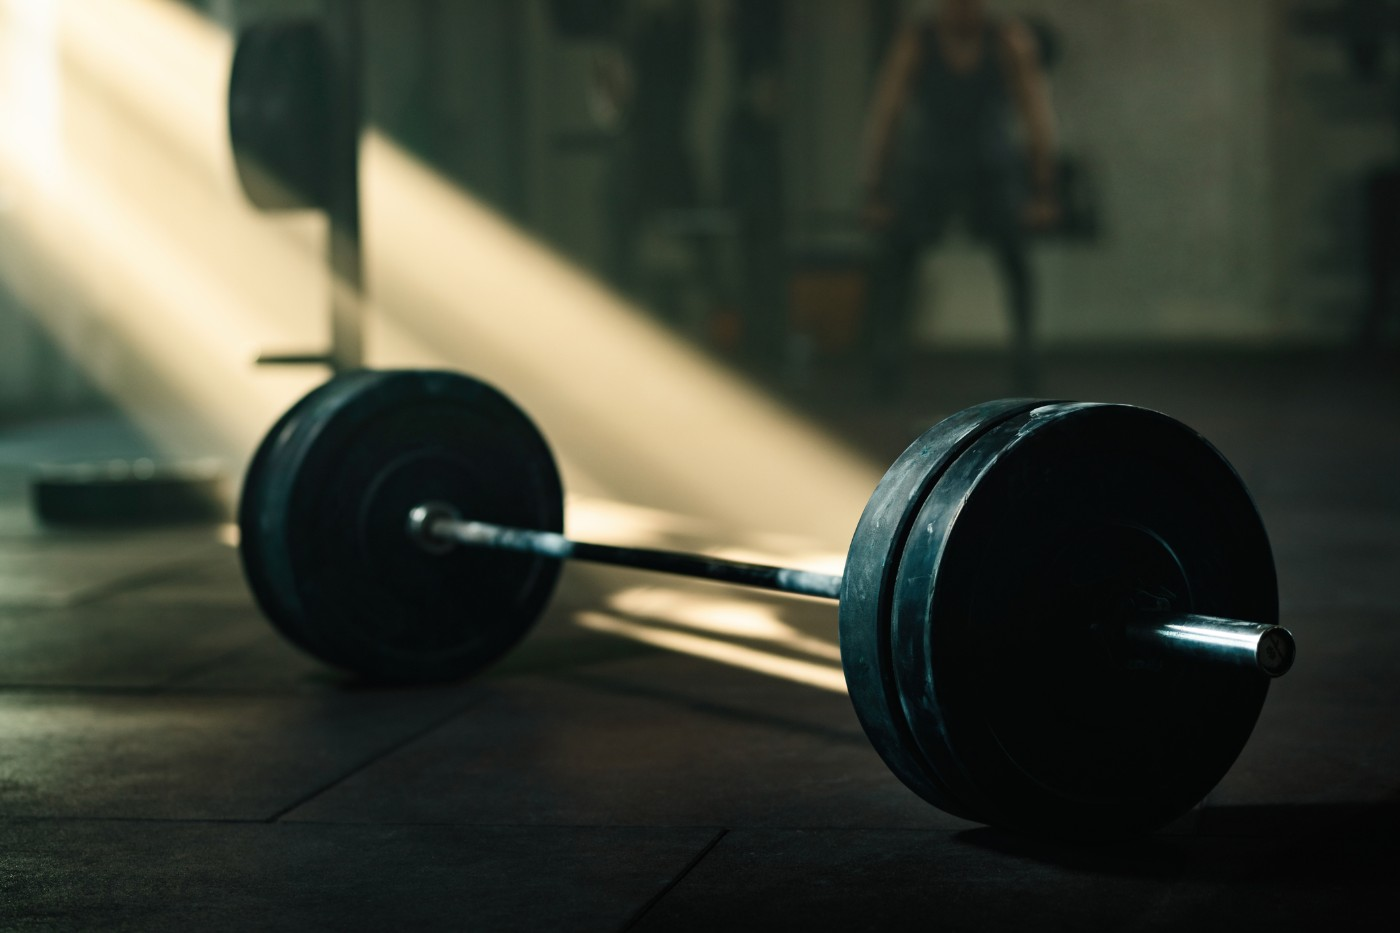 https://tickertapecdn.tdameritrade.com/assets/images/pages/md/barbell: barbell strategy for fixed income investments